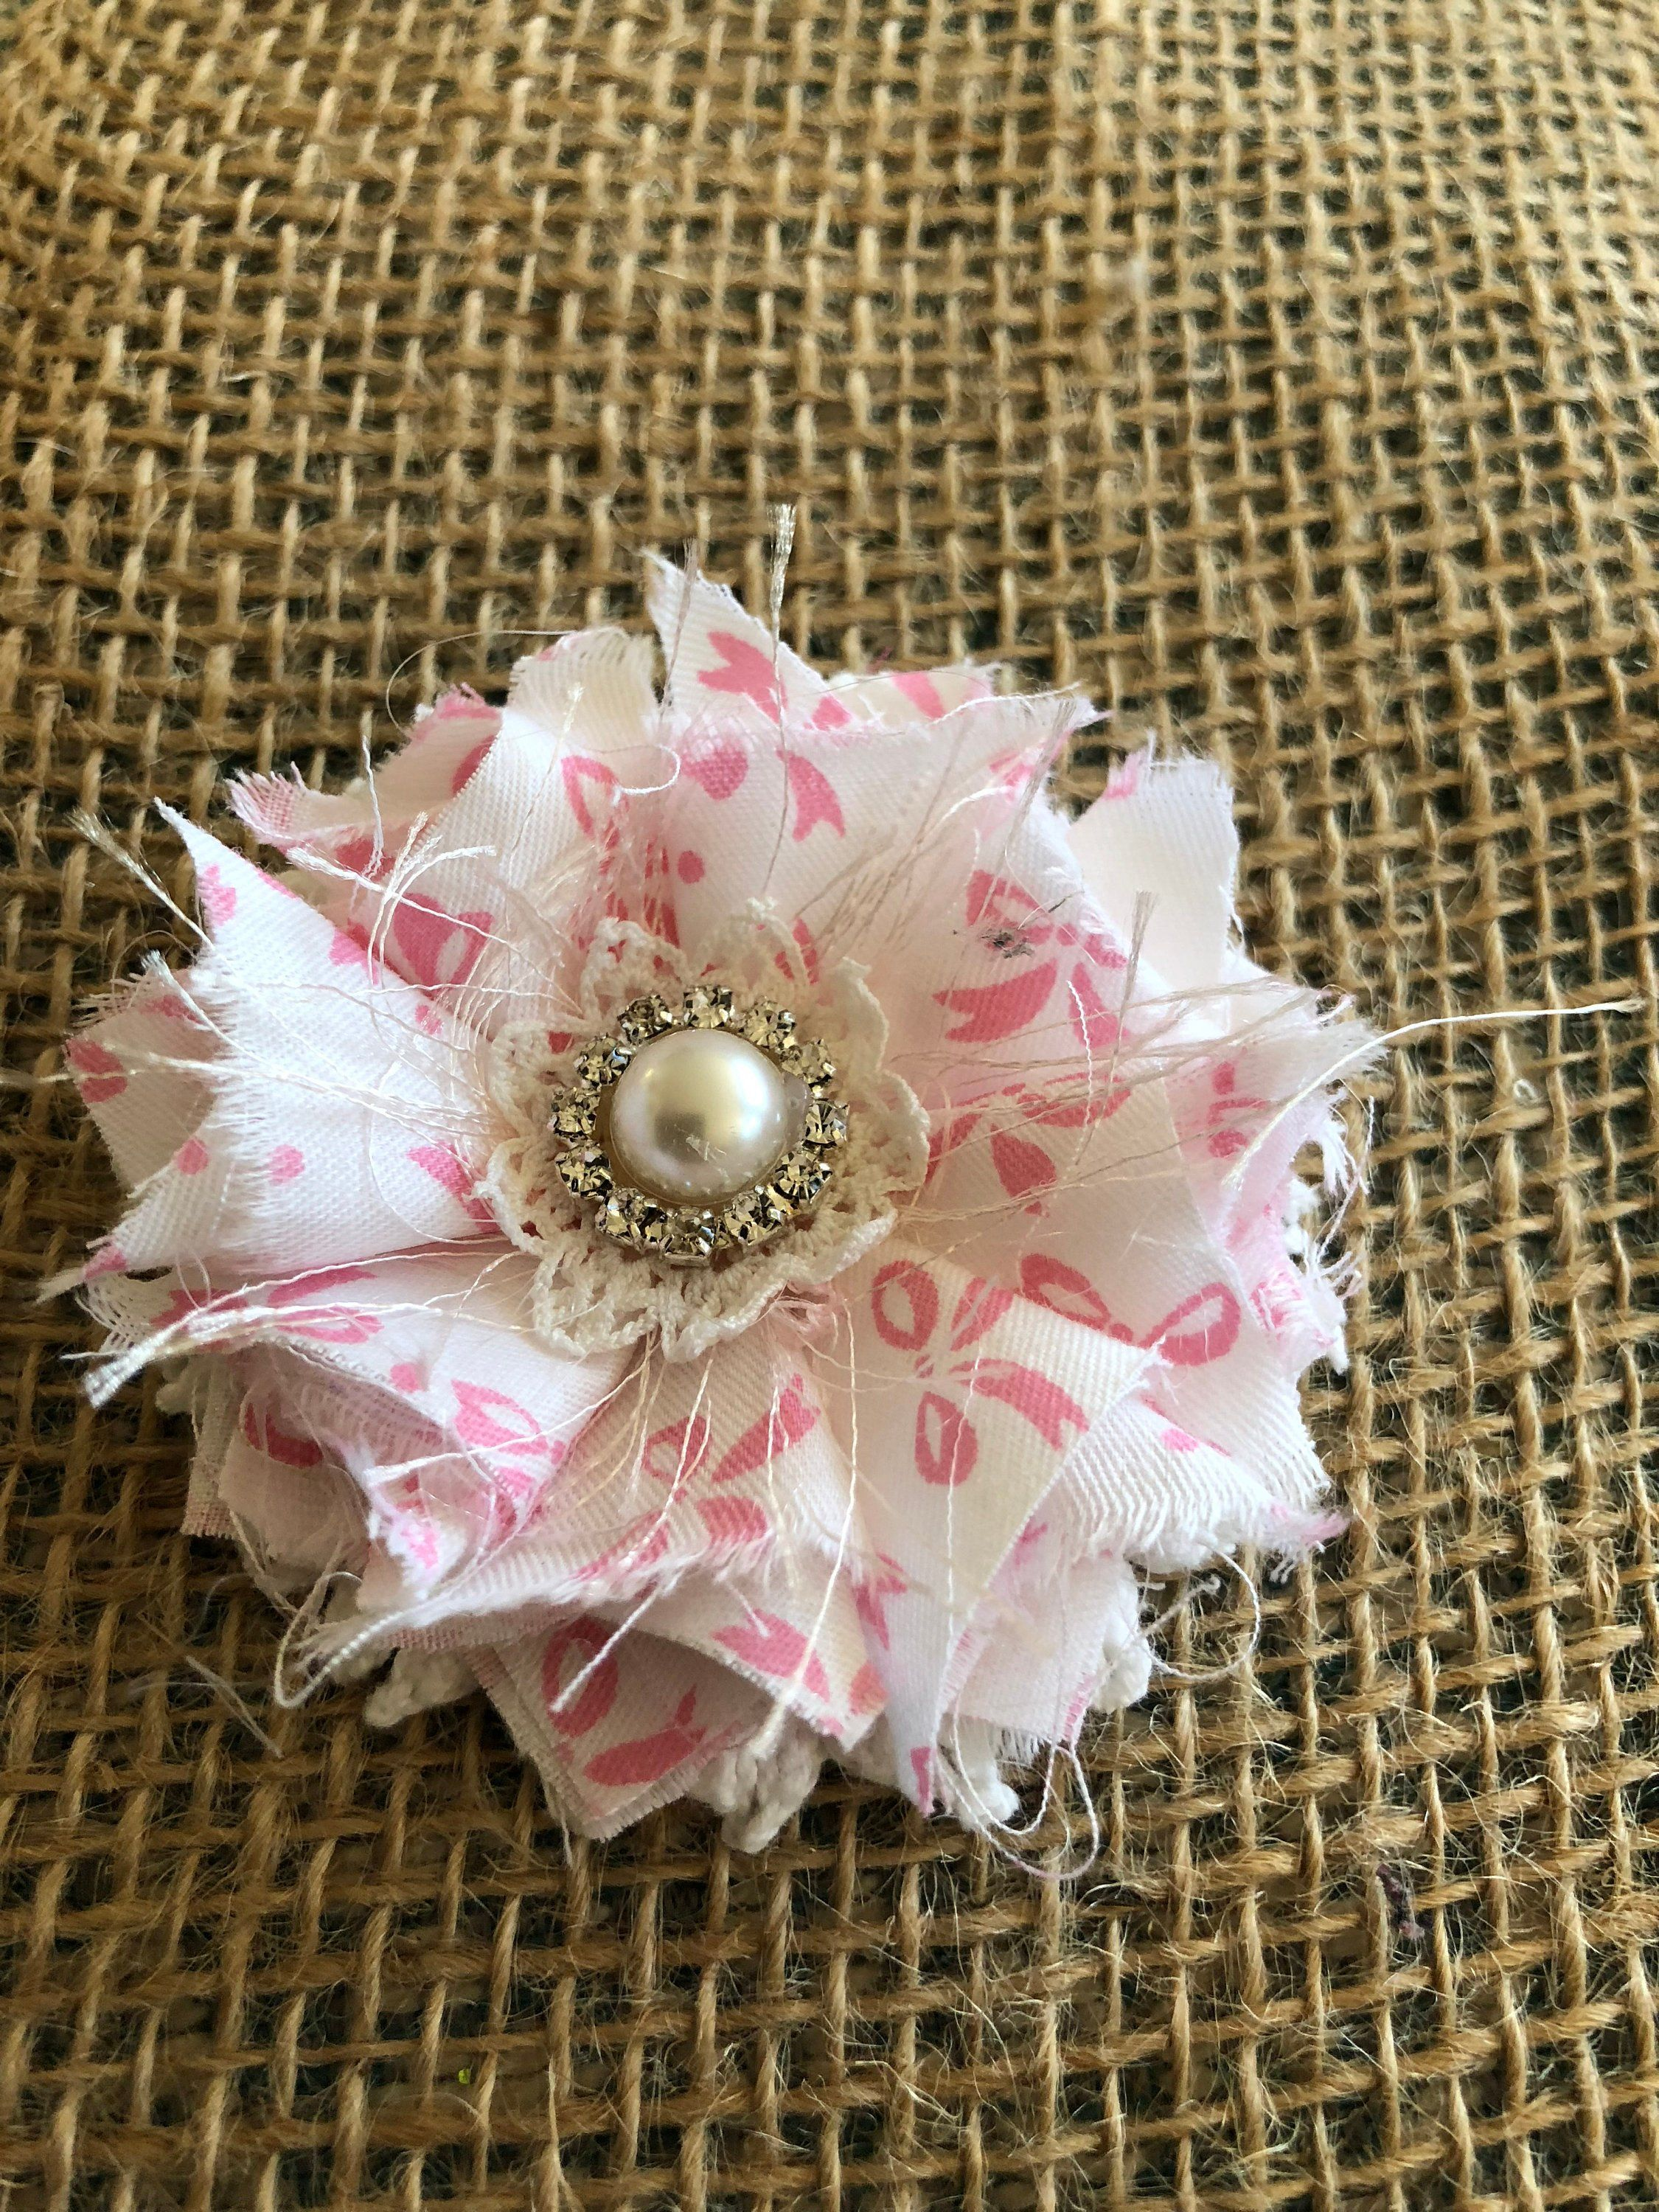 Shabby Chic Fabric Flower Country Chic Flower Cottage Chic Embellishments Pink Fabric Flowers Baby Girl Headb Fabric Flowers Chic Flowers Shabby Chic Fabric